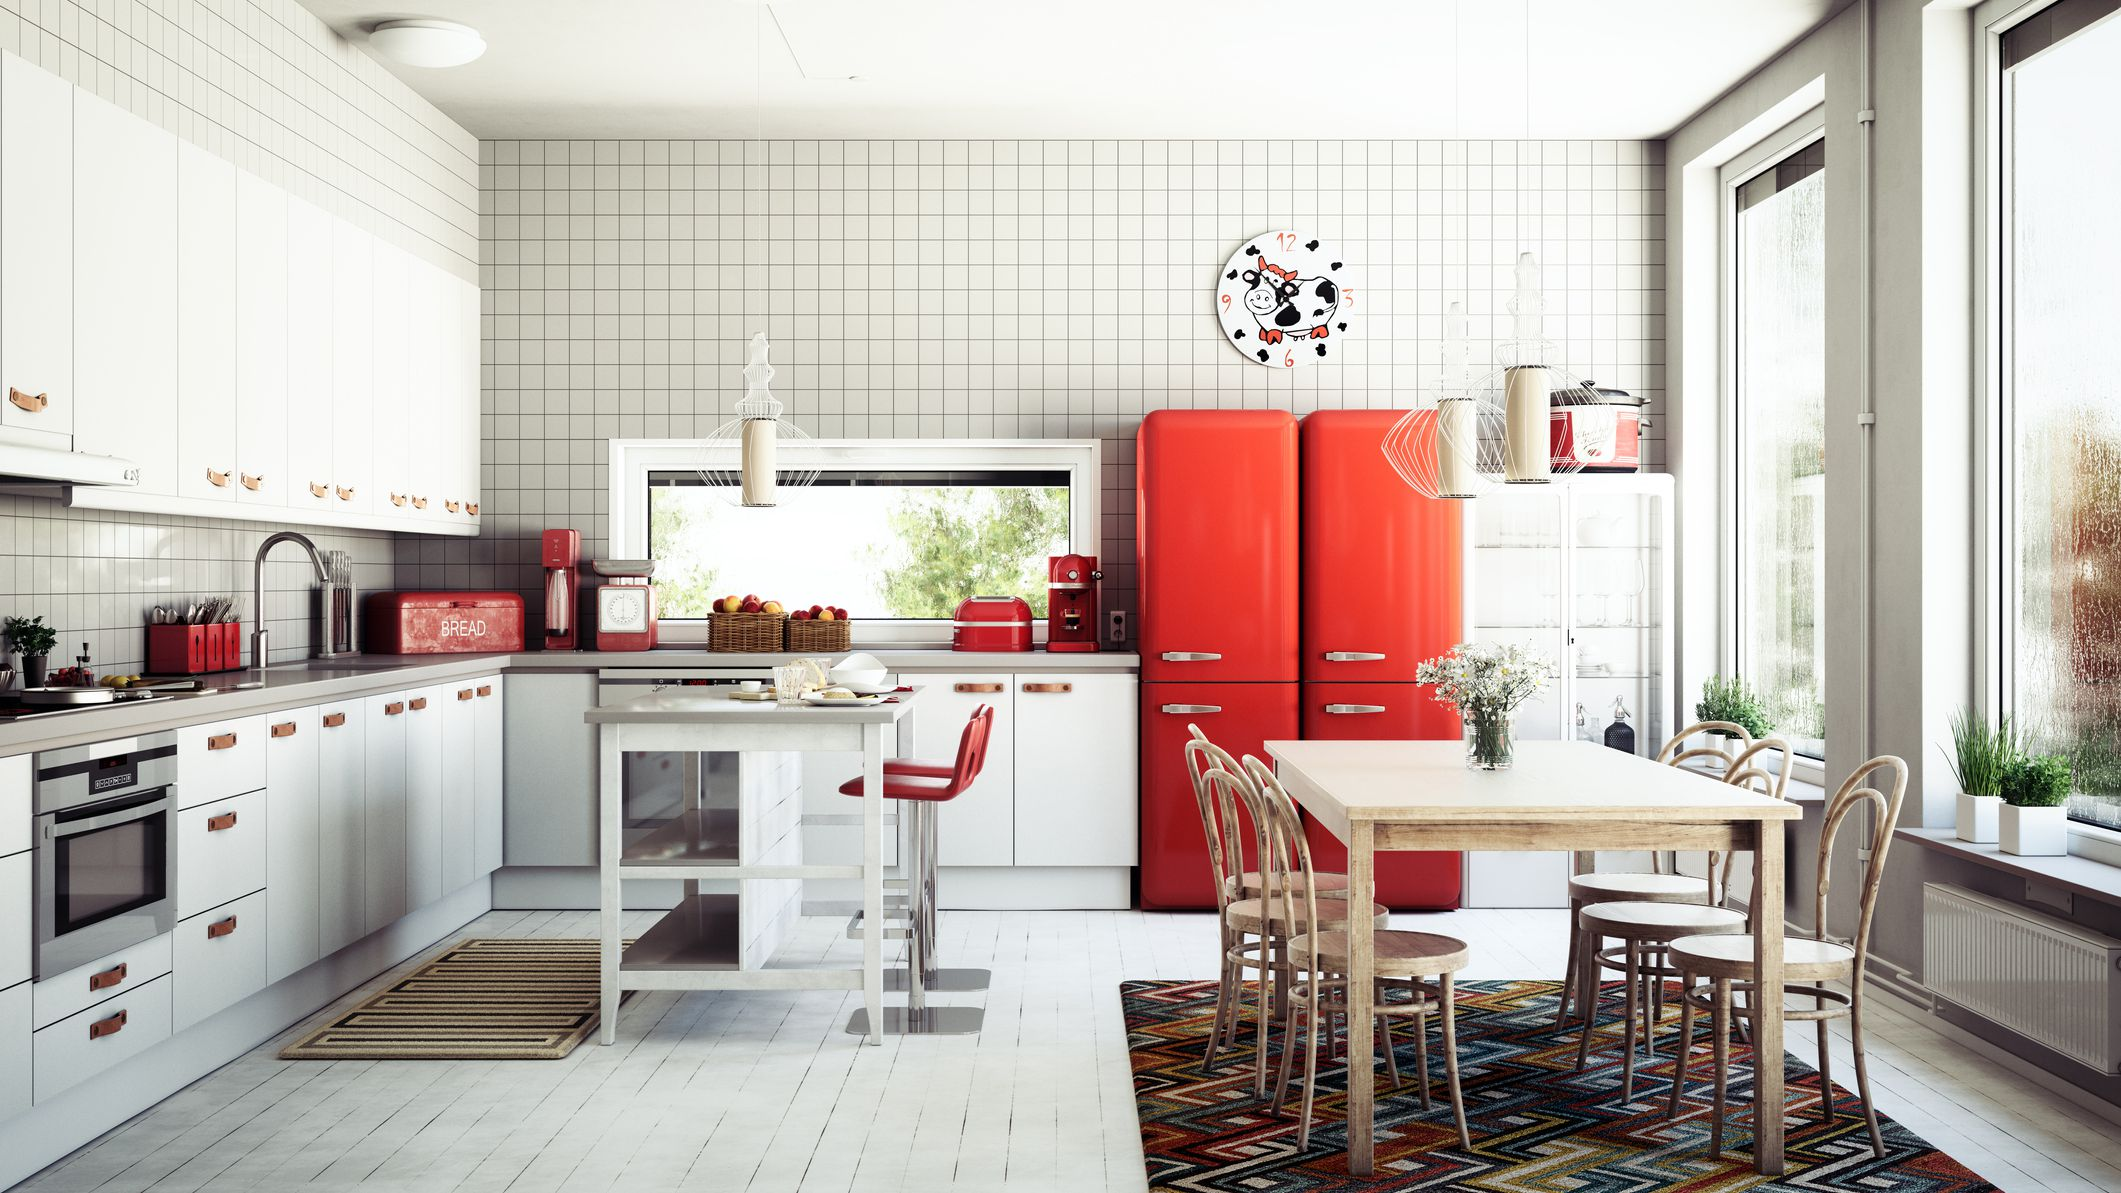 How To Pick The Color Of Your Kitchen Appliances